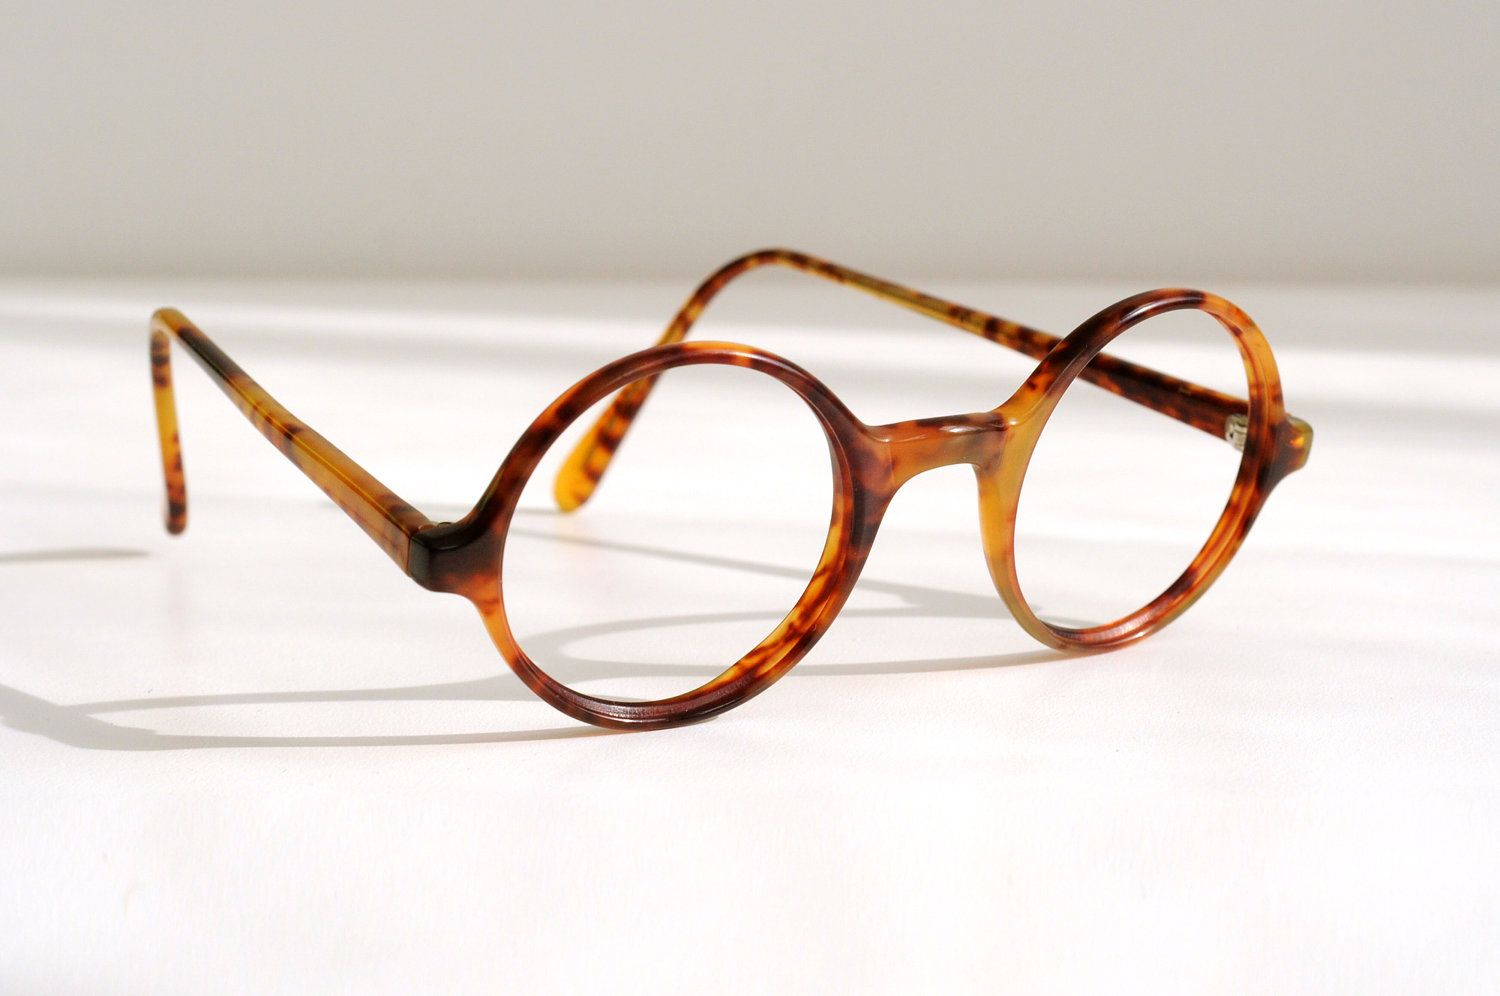 631745a11422 small round glasses tortoise shell 80s Polo Ralph Lauren preppy classic 20s  style.  75.00